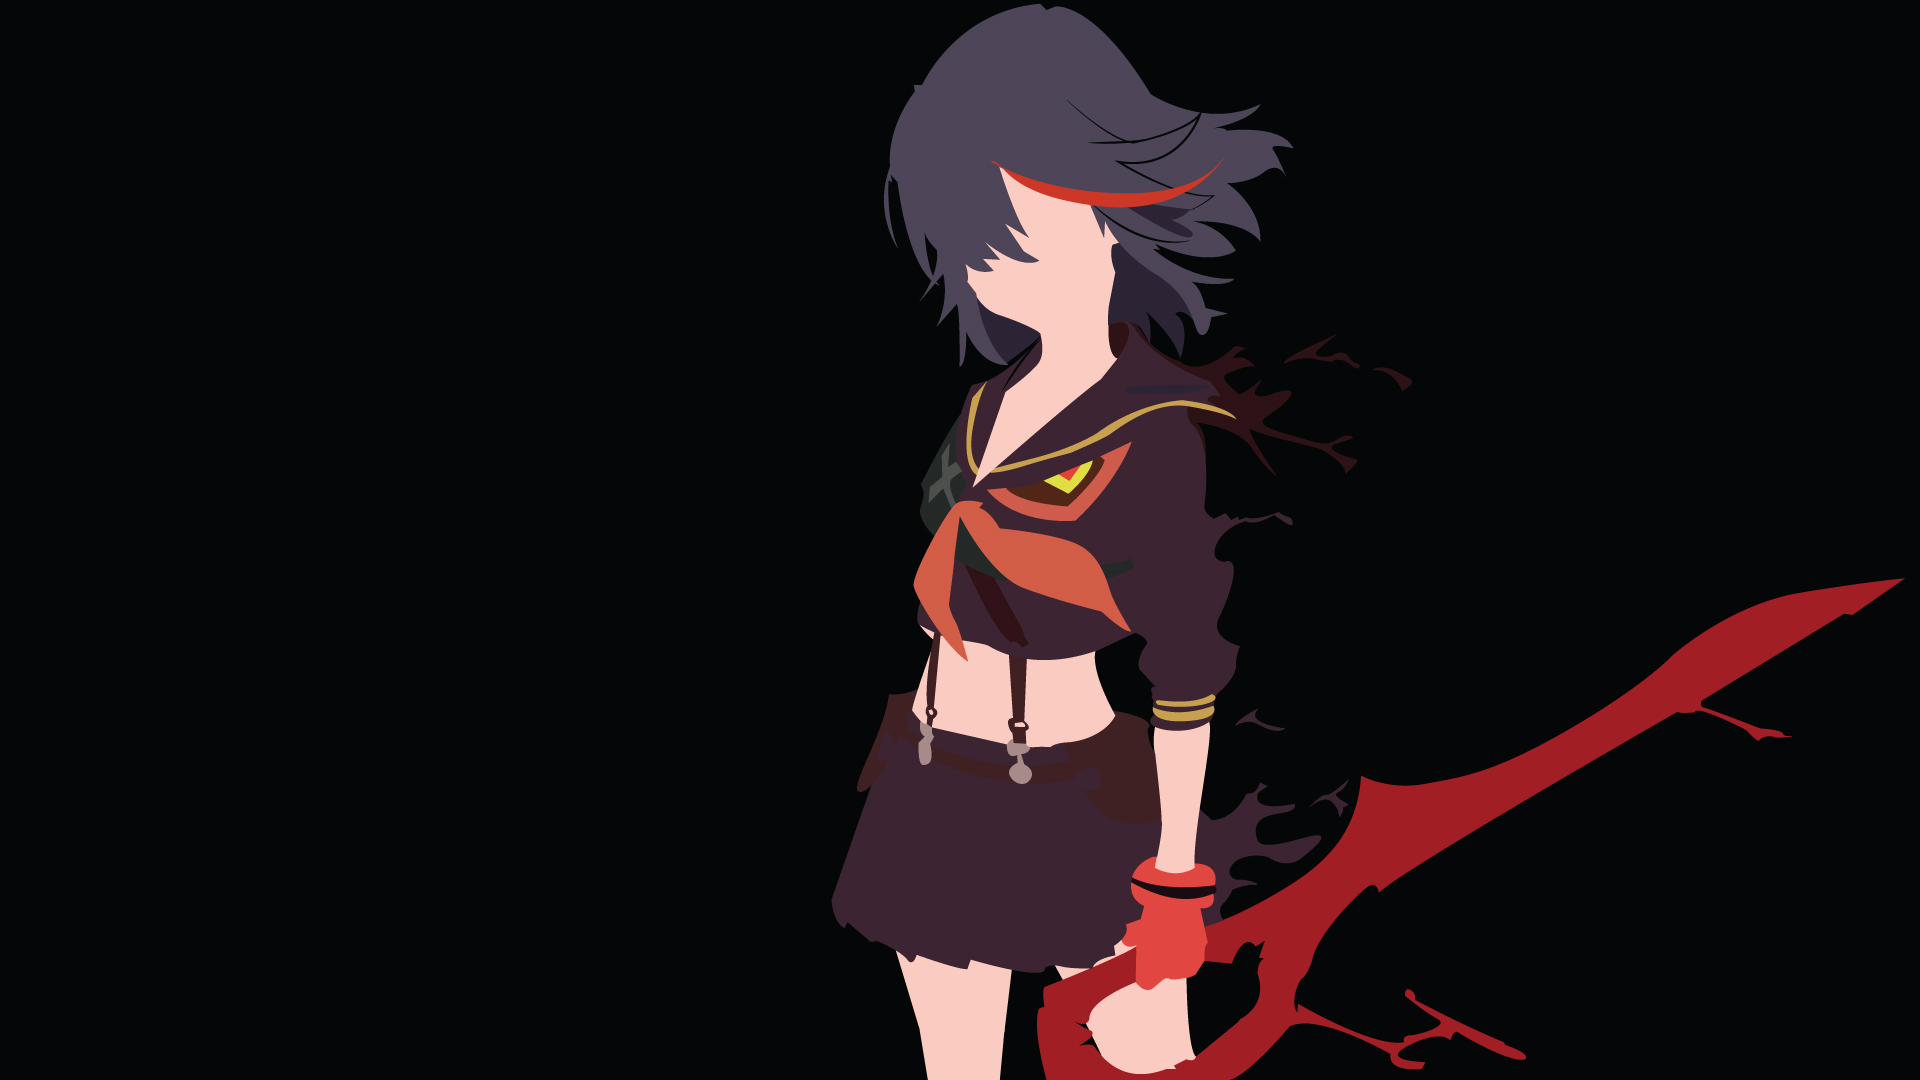 49 Kill La Kill Iphone Wallpaper On Wallpapersafari